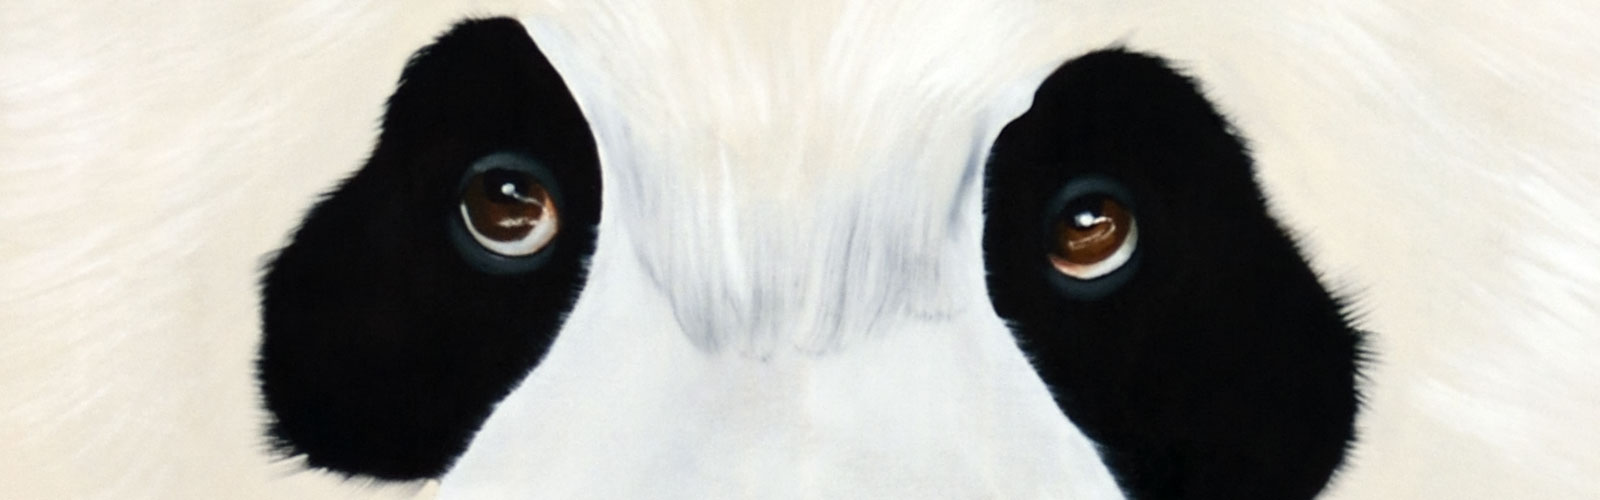 Closeup-Panda animal-painting Thierry Bisch painter animals painting art decoration hotel design interior luxury nature biodiversity conservation